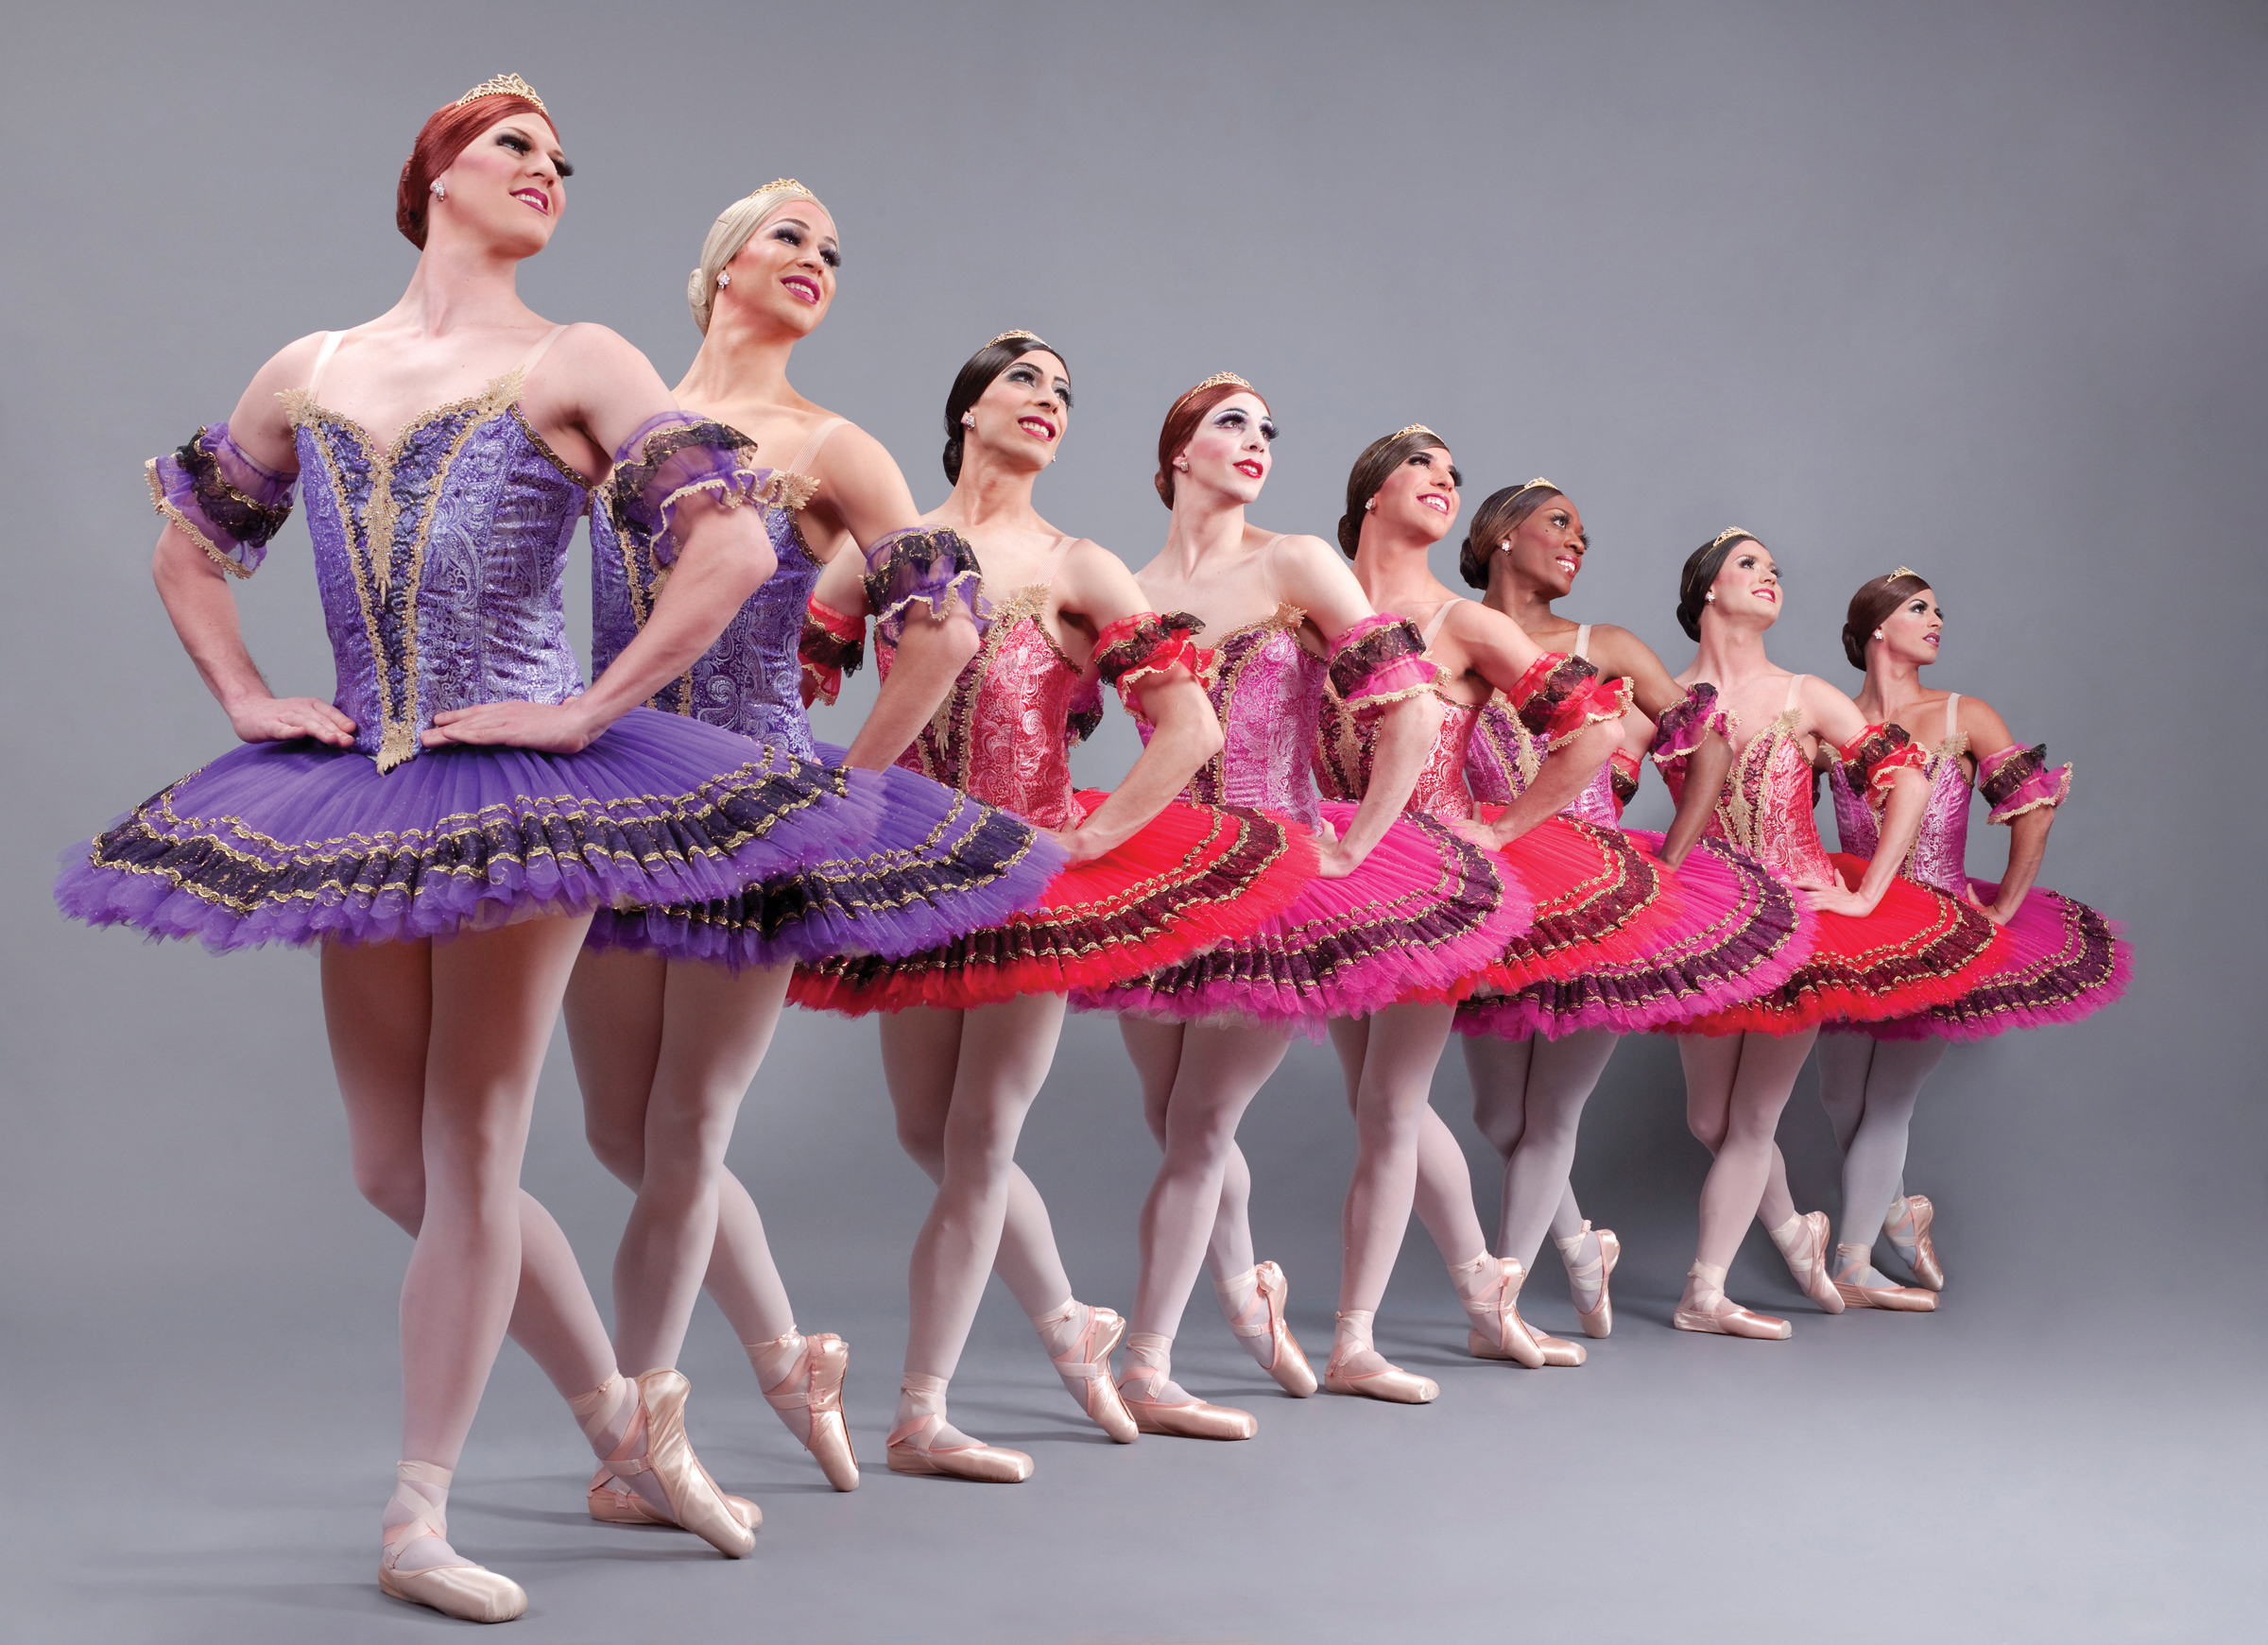 Les Ballets Trockadero de Monte Carlo will perform in Meany Hall May 16-18.